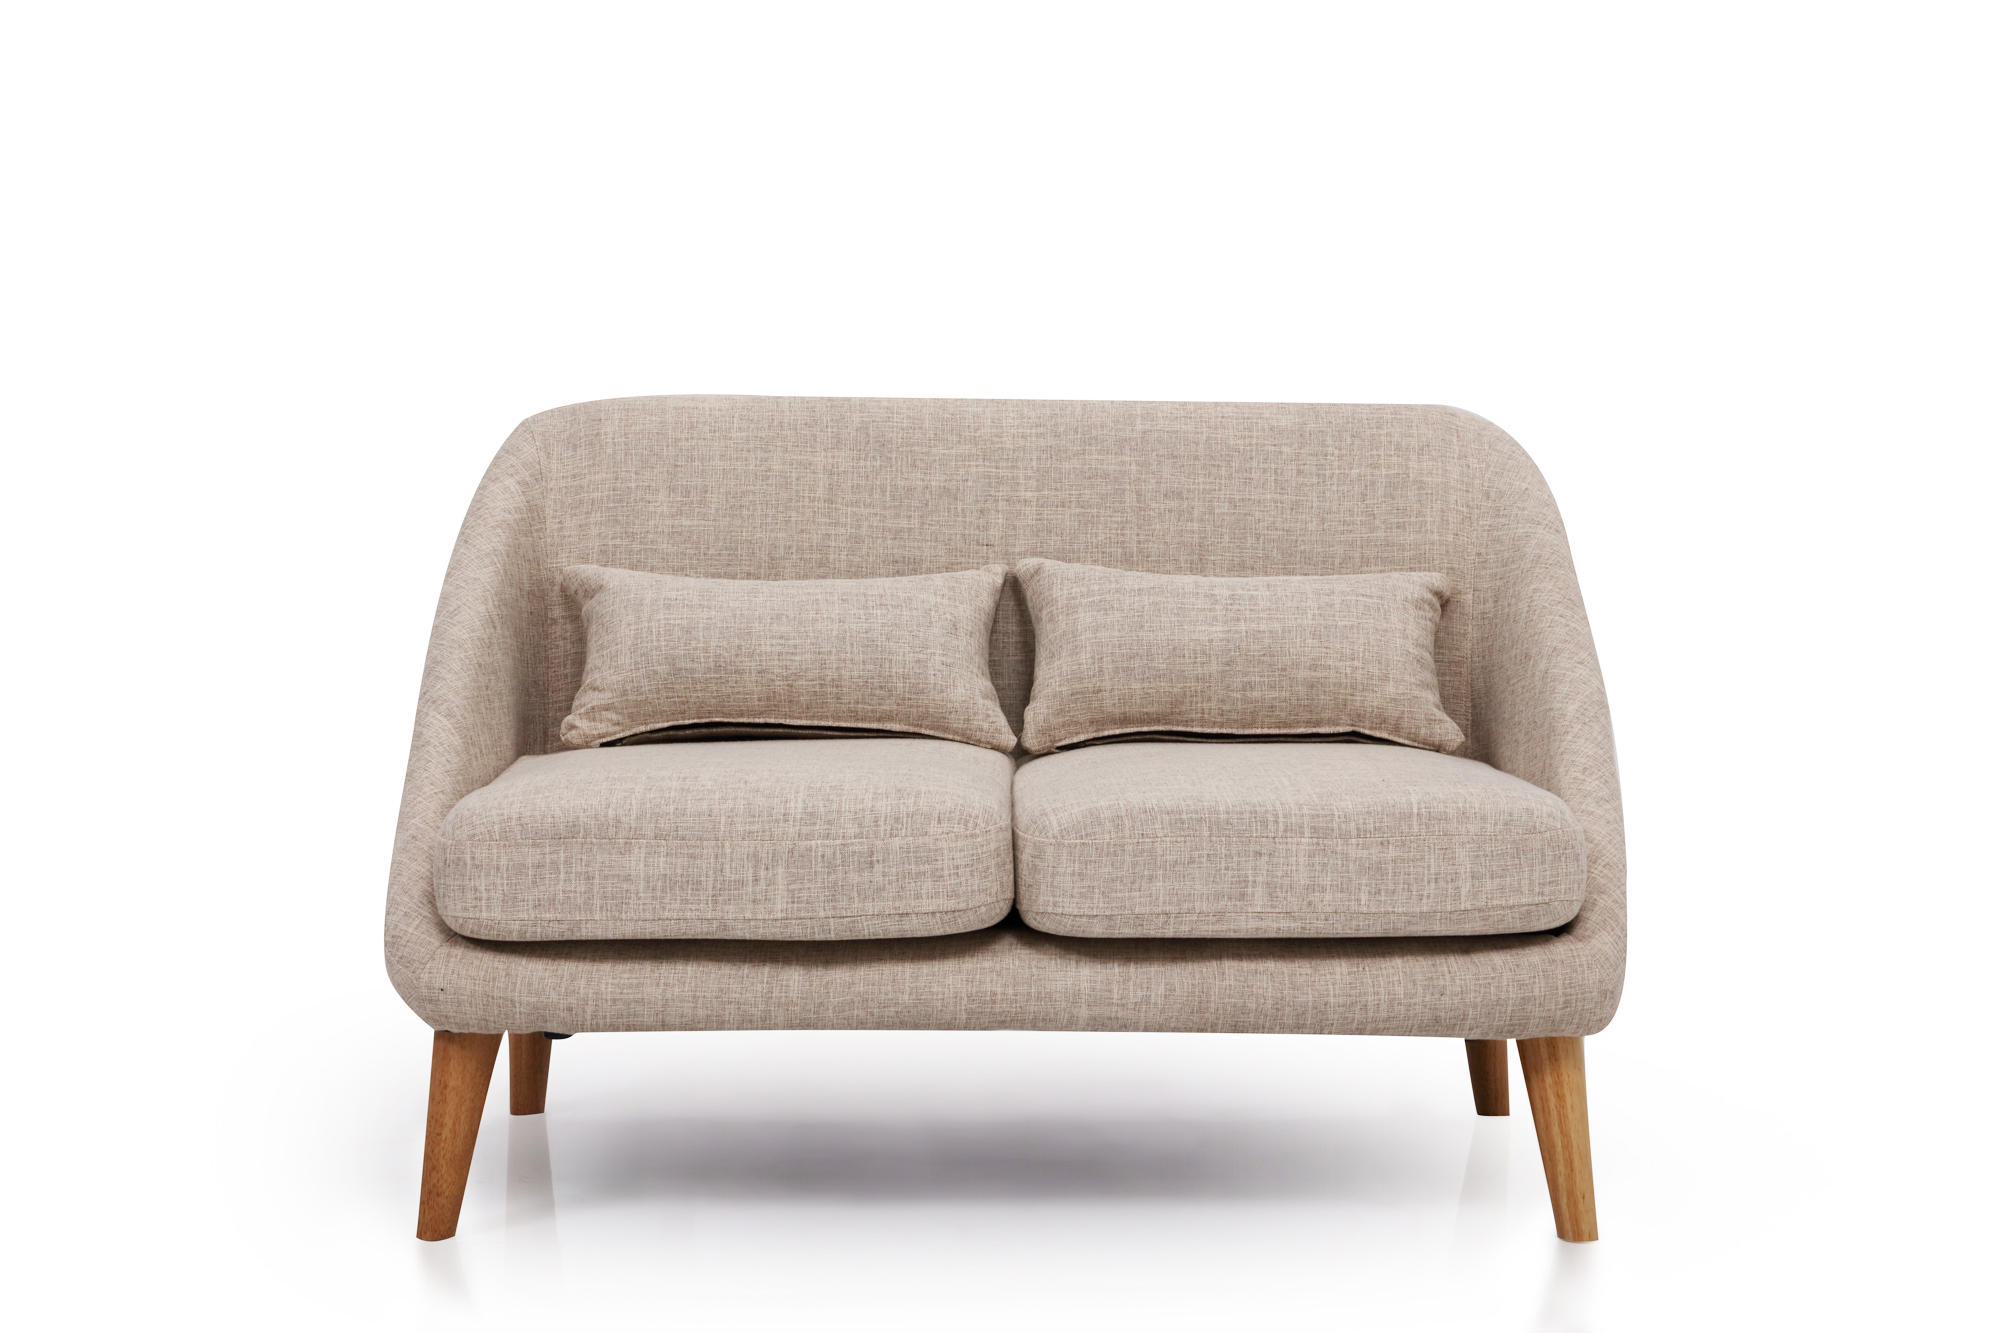 Peachy Grey Fabric Two Seater Sofa Ideal For Small Space Living Download Free Architecture Designs Momecebritishbridgeorg